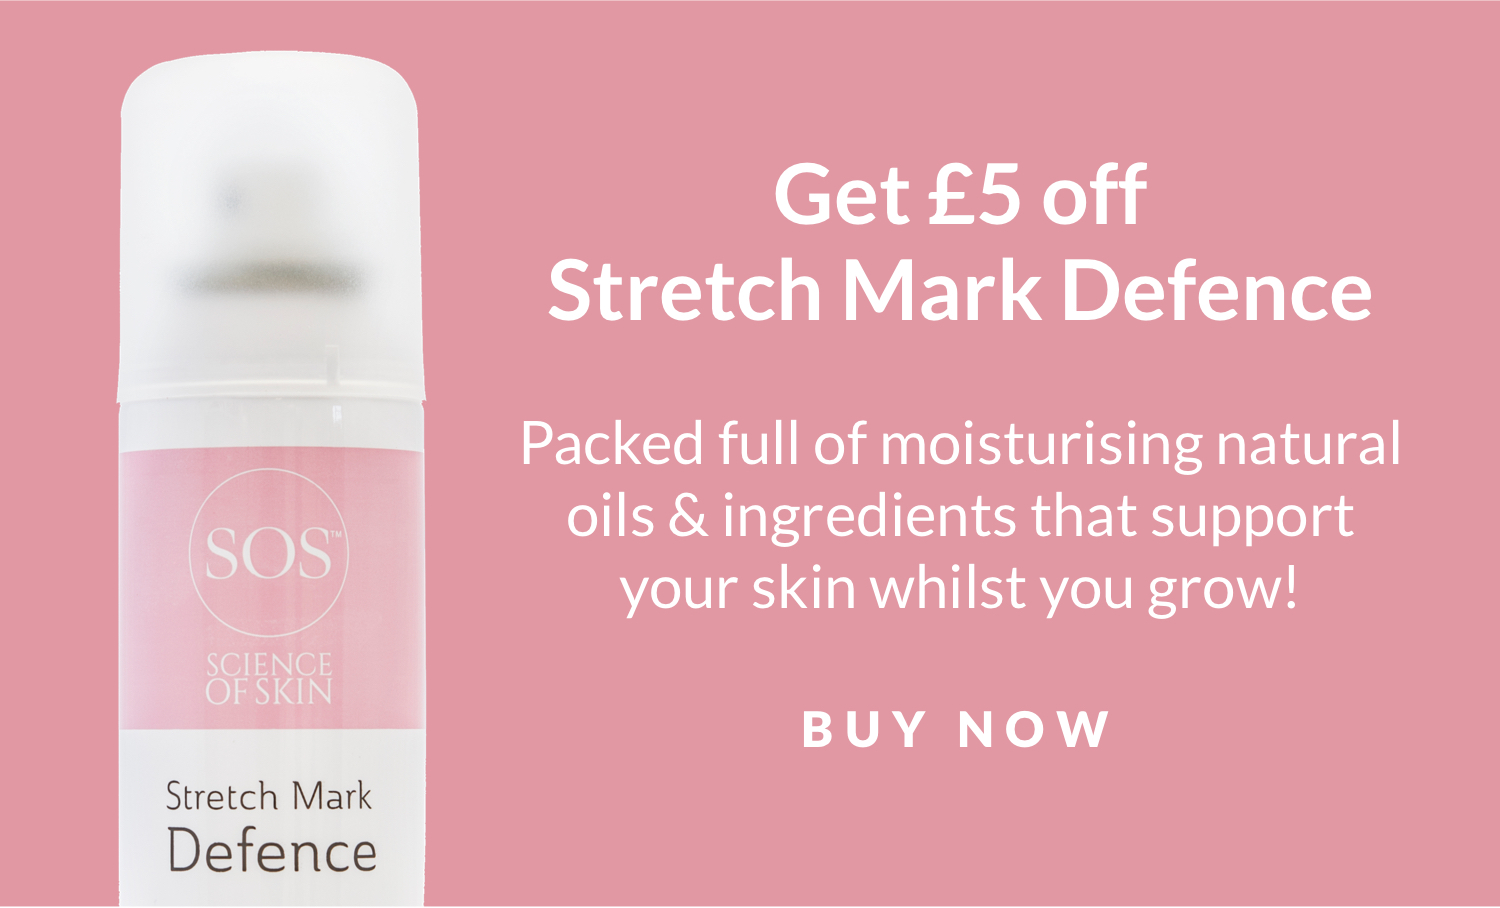 Stretch Mark Defence